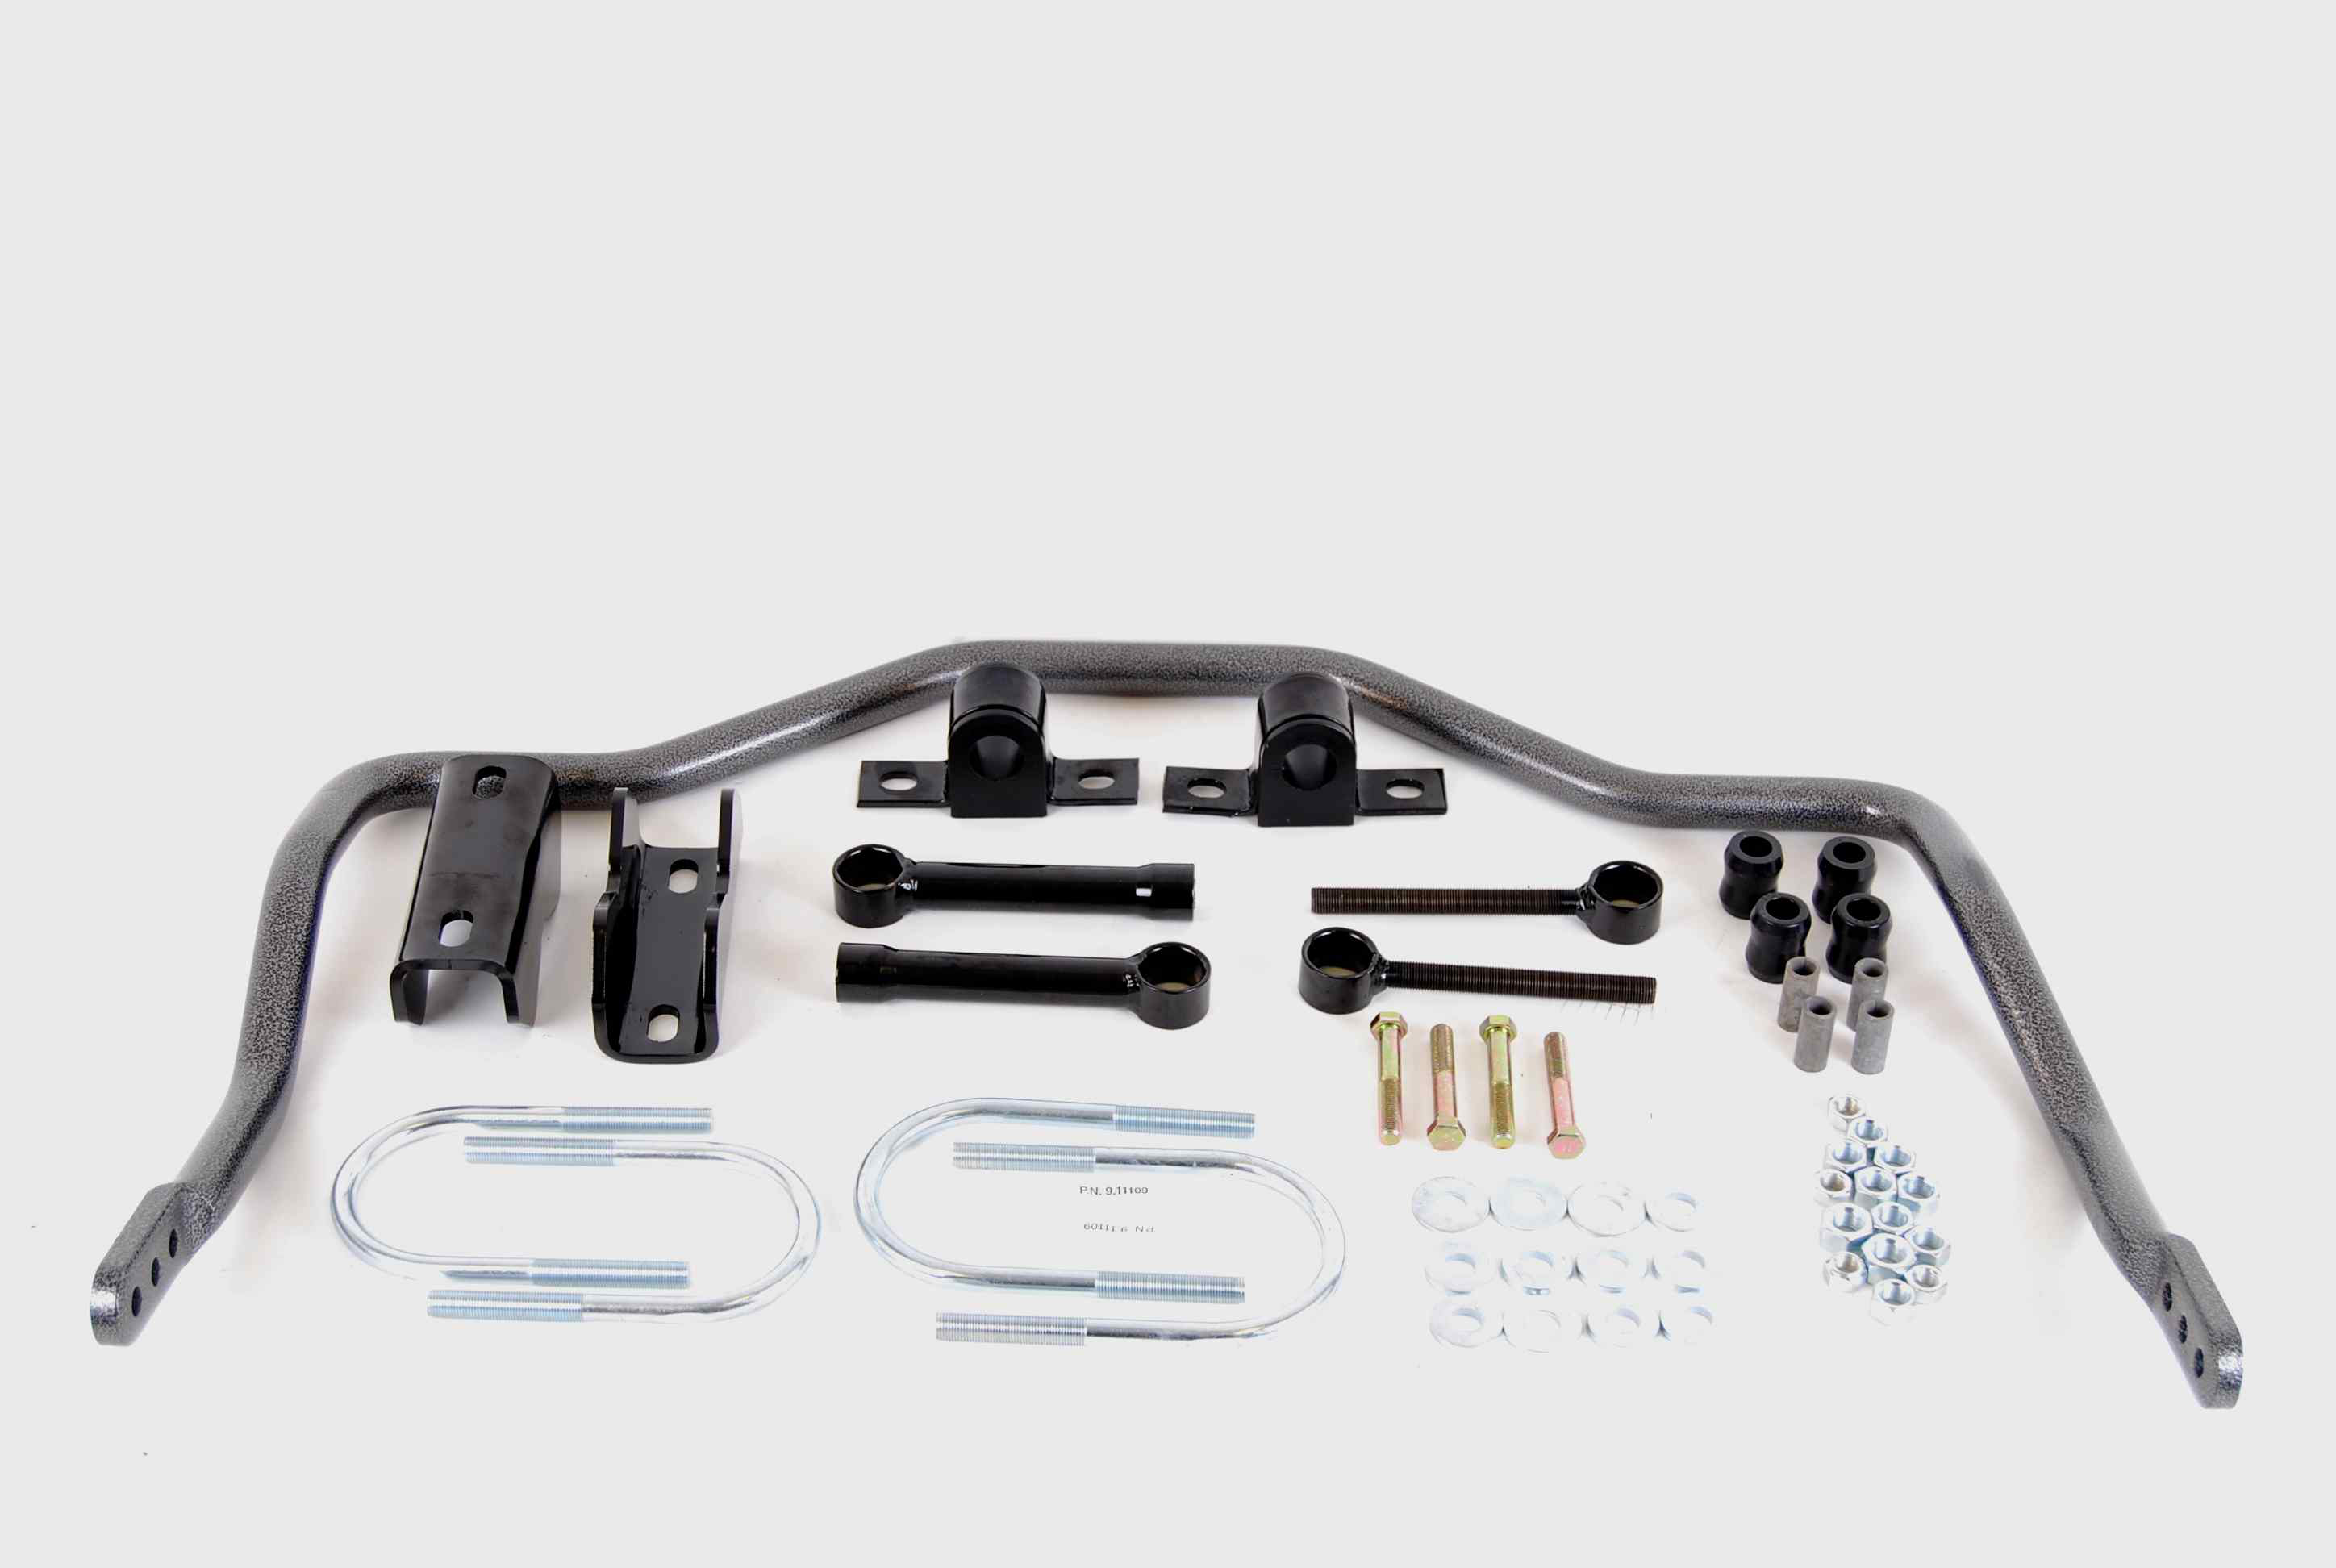 hellwig sway bar kits ready for chevy c10 and c20 pickups